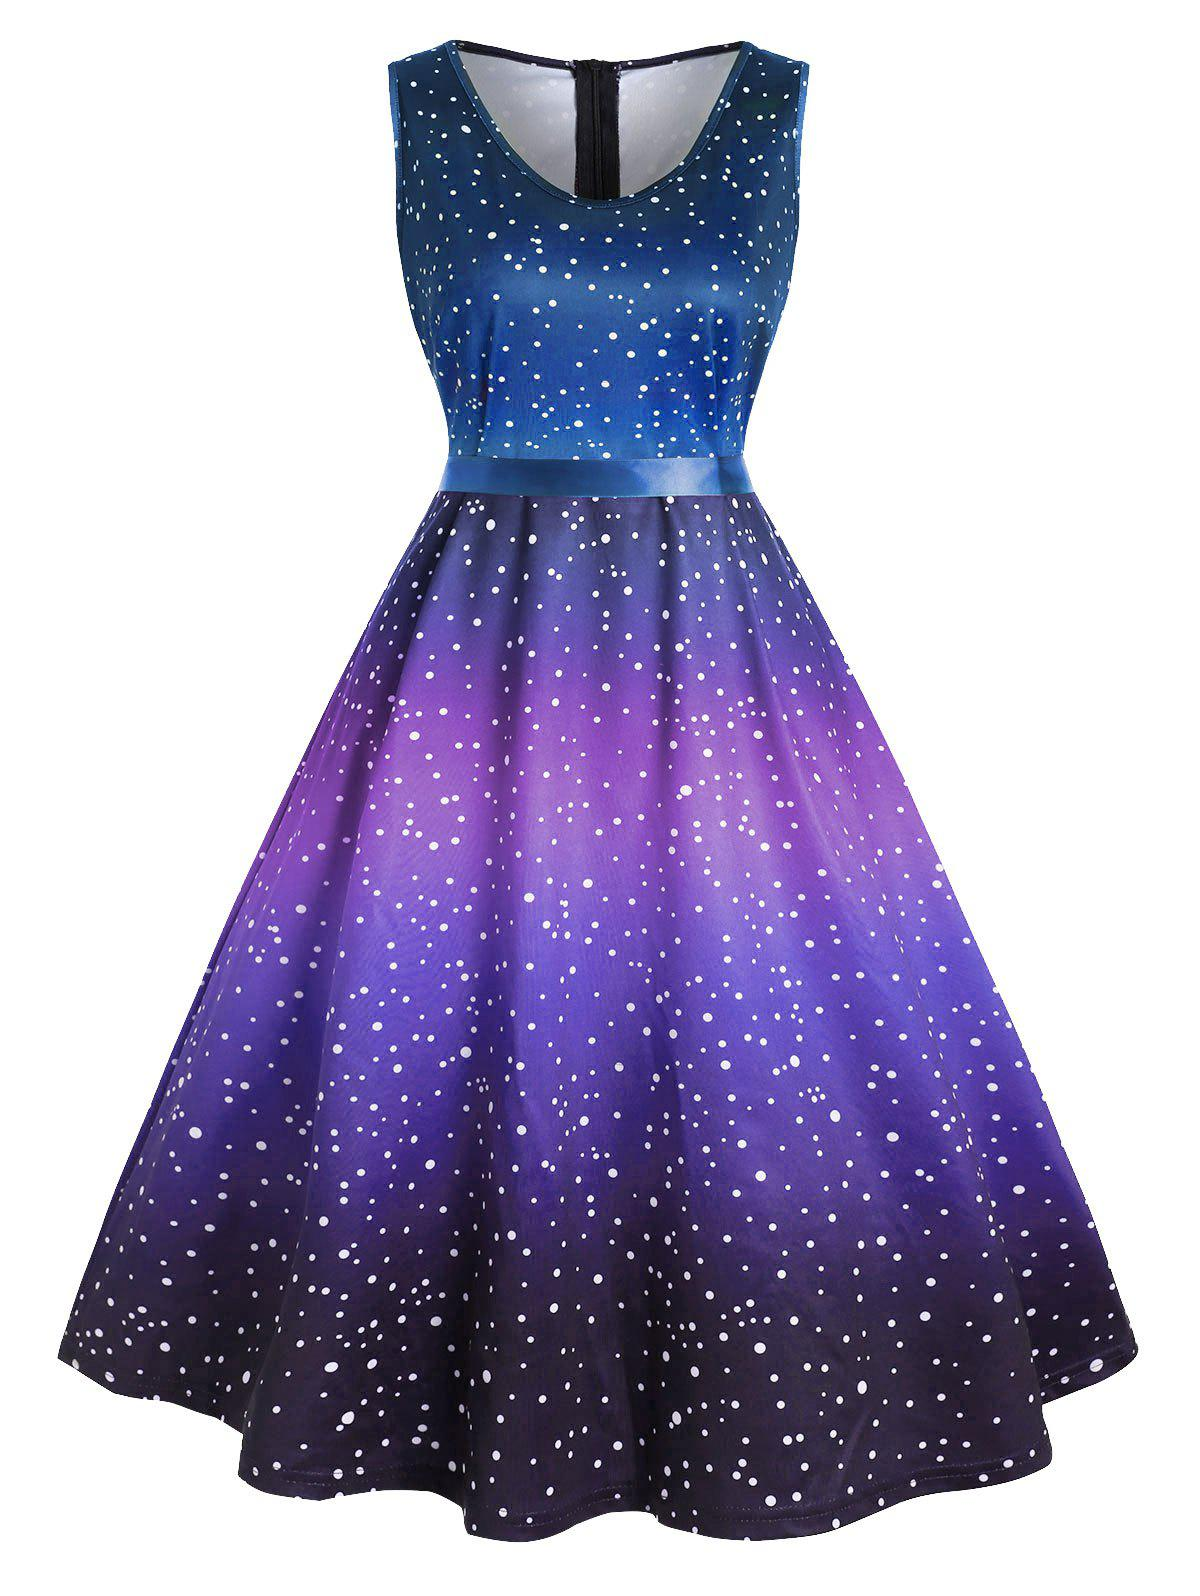 Plus Size Vintage Ombre Polka Dot Pin Up Dress - PURPLE 5X